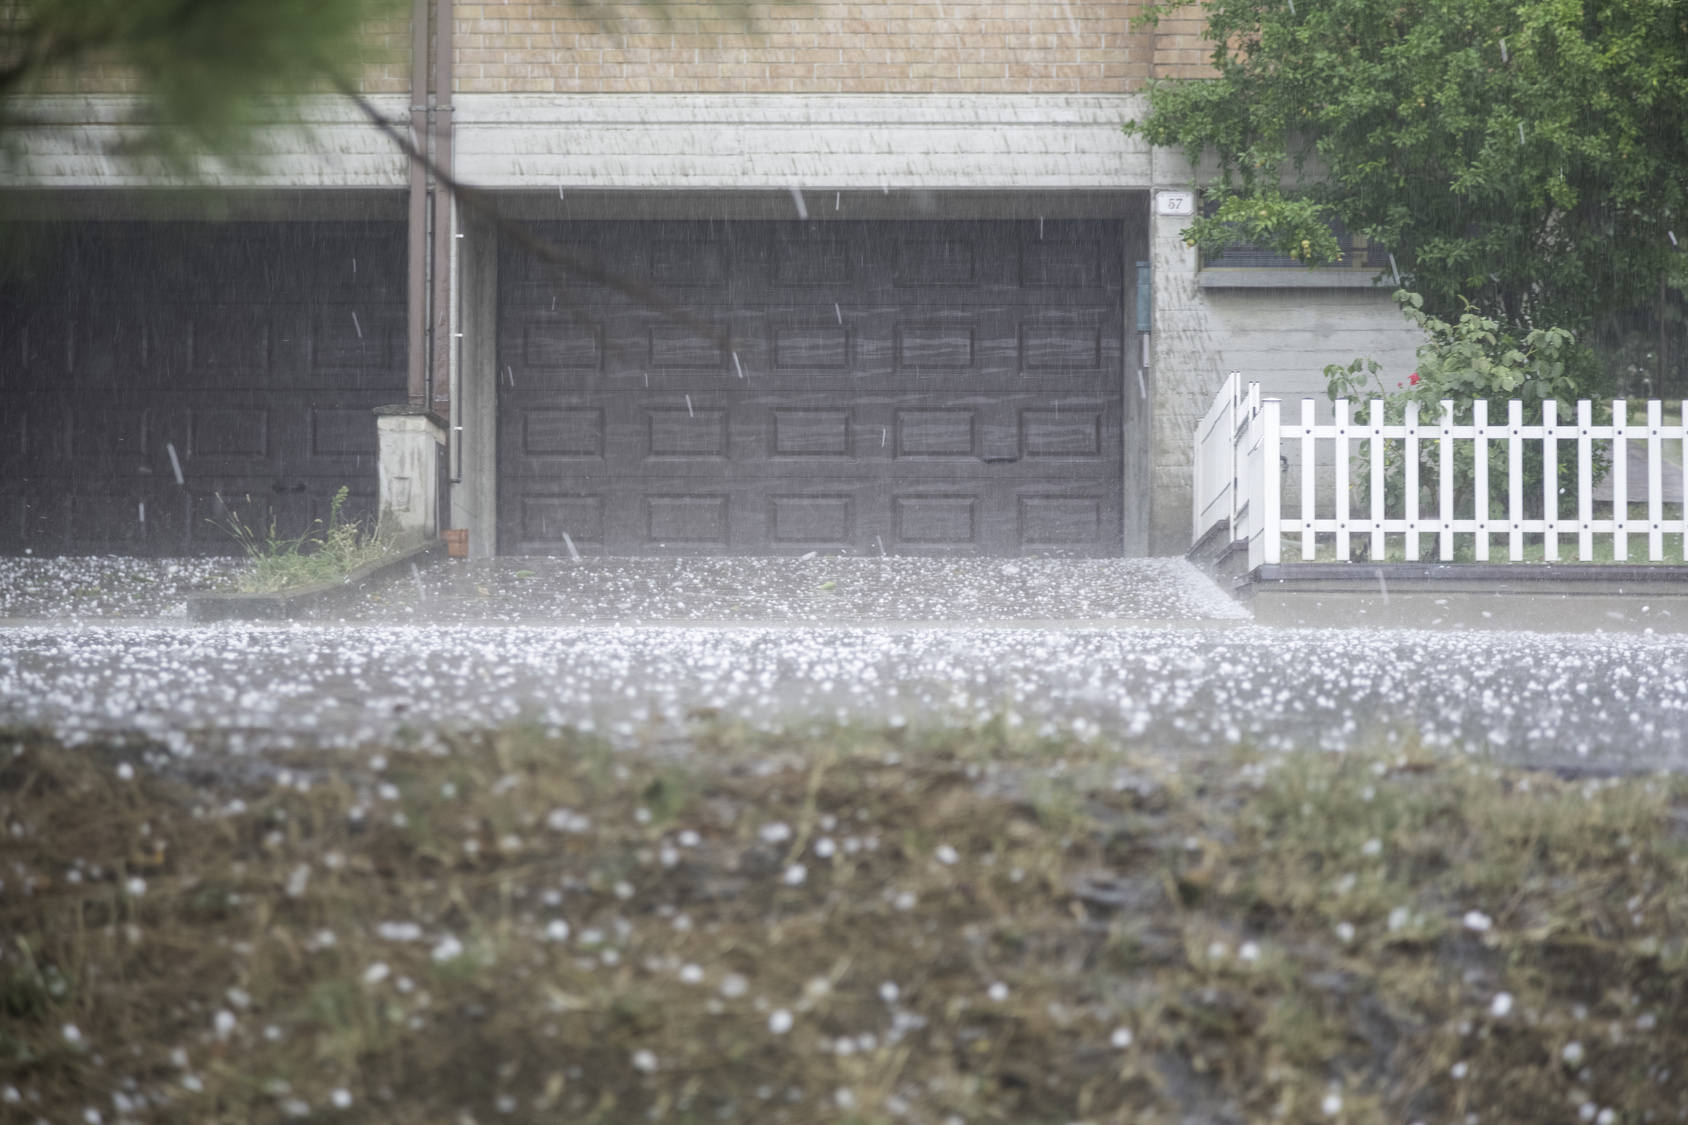 Hail falling from the sky in front of a house